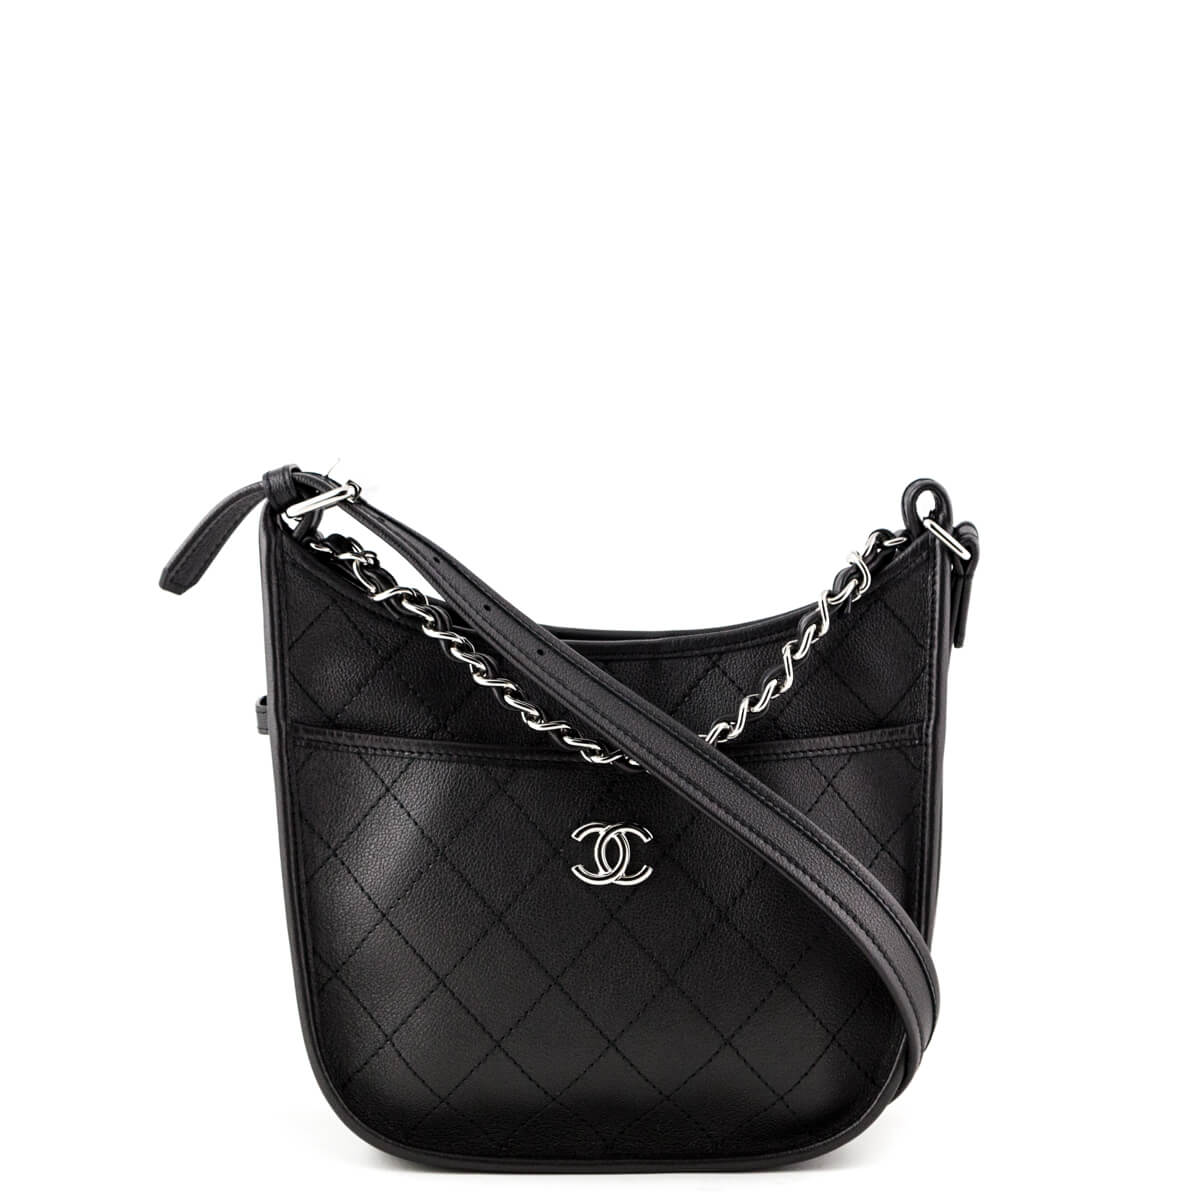 cc68b27078 Chanel Black Quilted Calfskin Small Jungle Stroll Hobo Bag